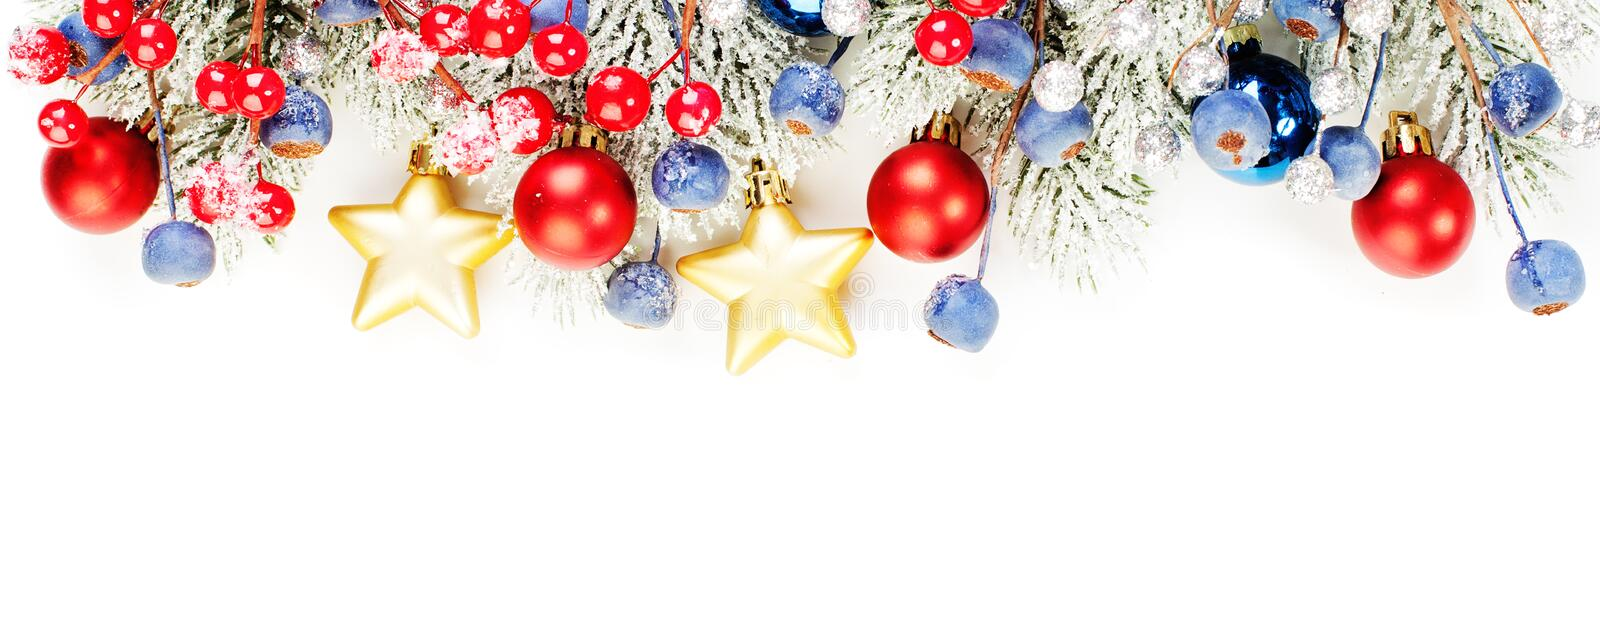 Christmas banner background. Xmas border composition with Christmas tree branch, red holly berries and gold garland isolated. On white background stock photo